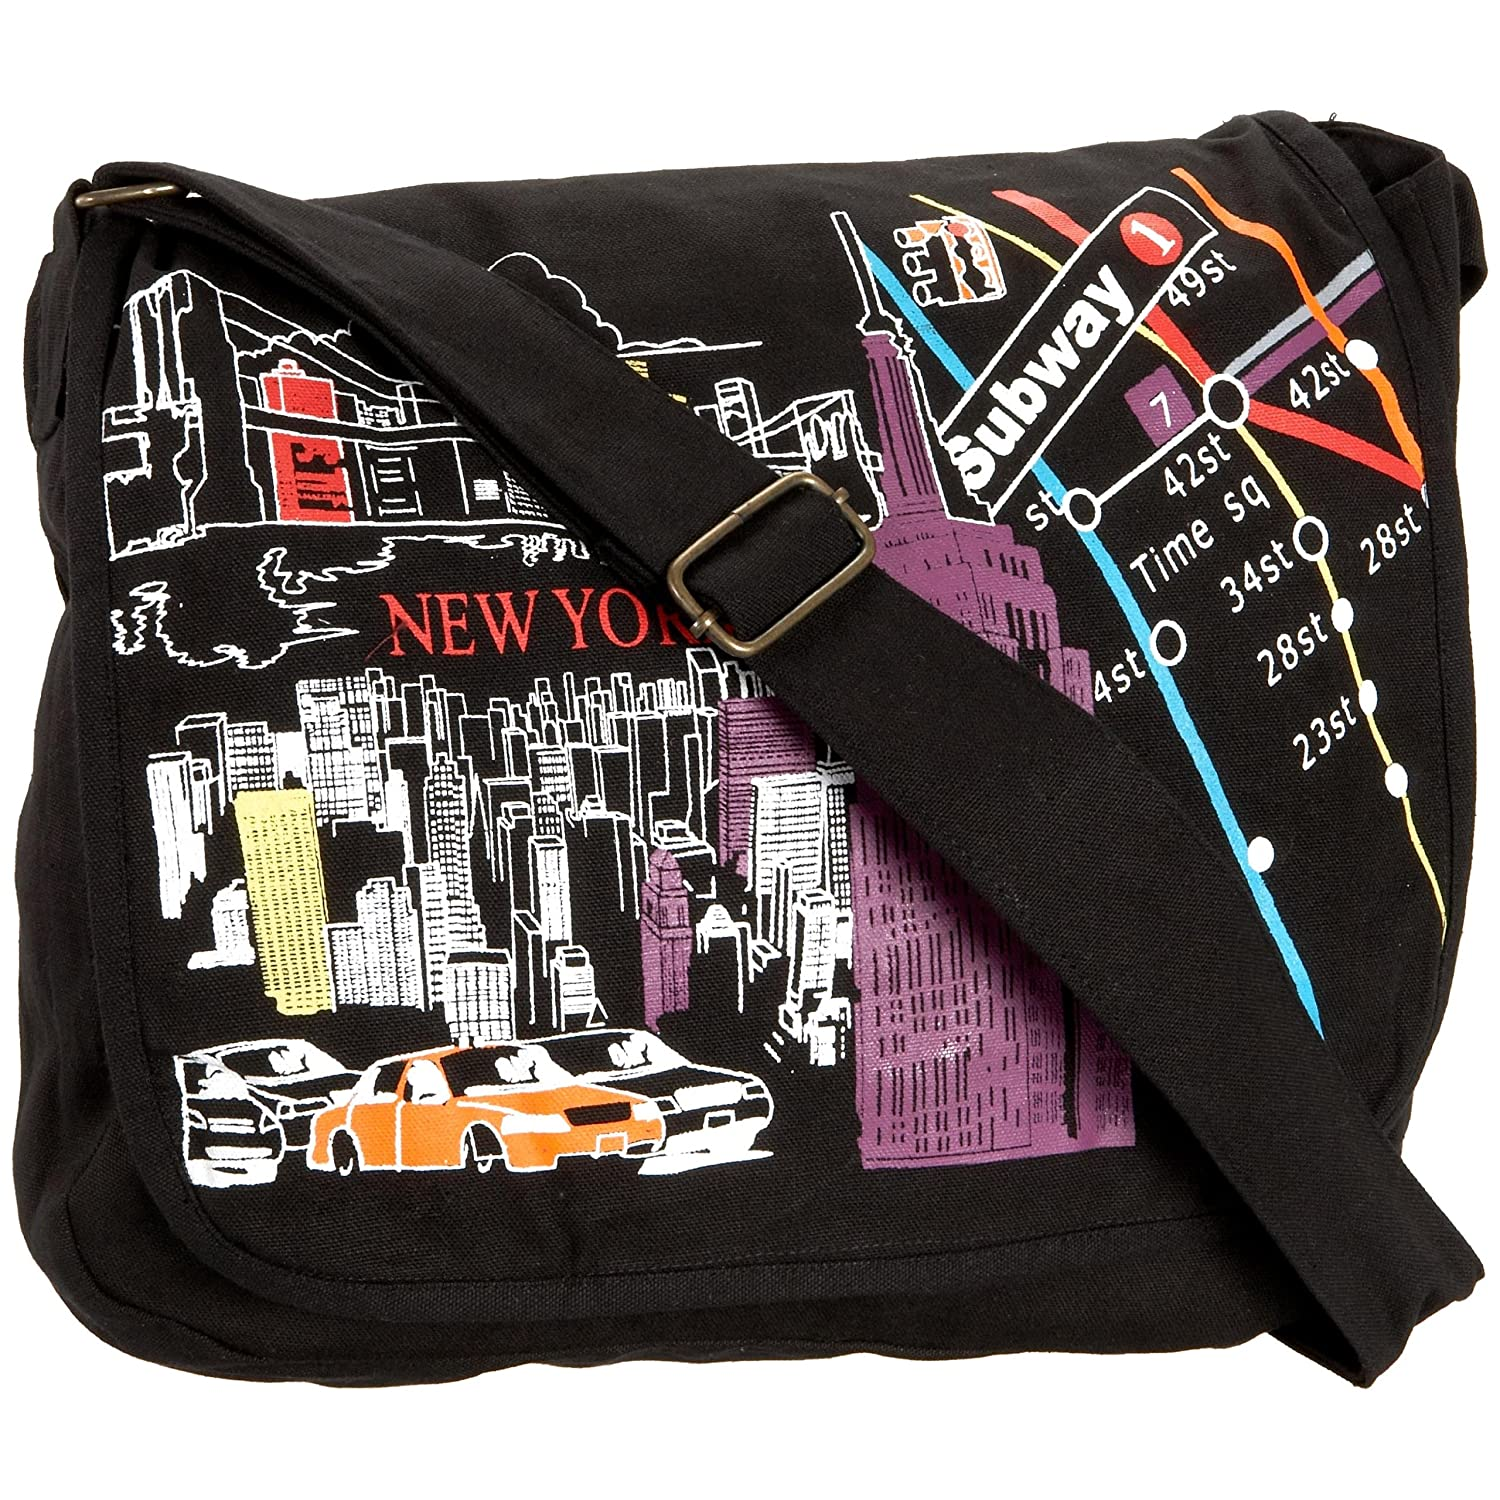 Prezzo NY Scenes Messenger Bag :  prezzo ny scenes messenger bag beach bag new york messenger bag